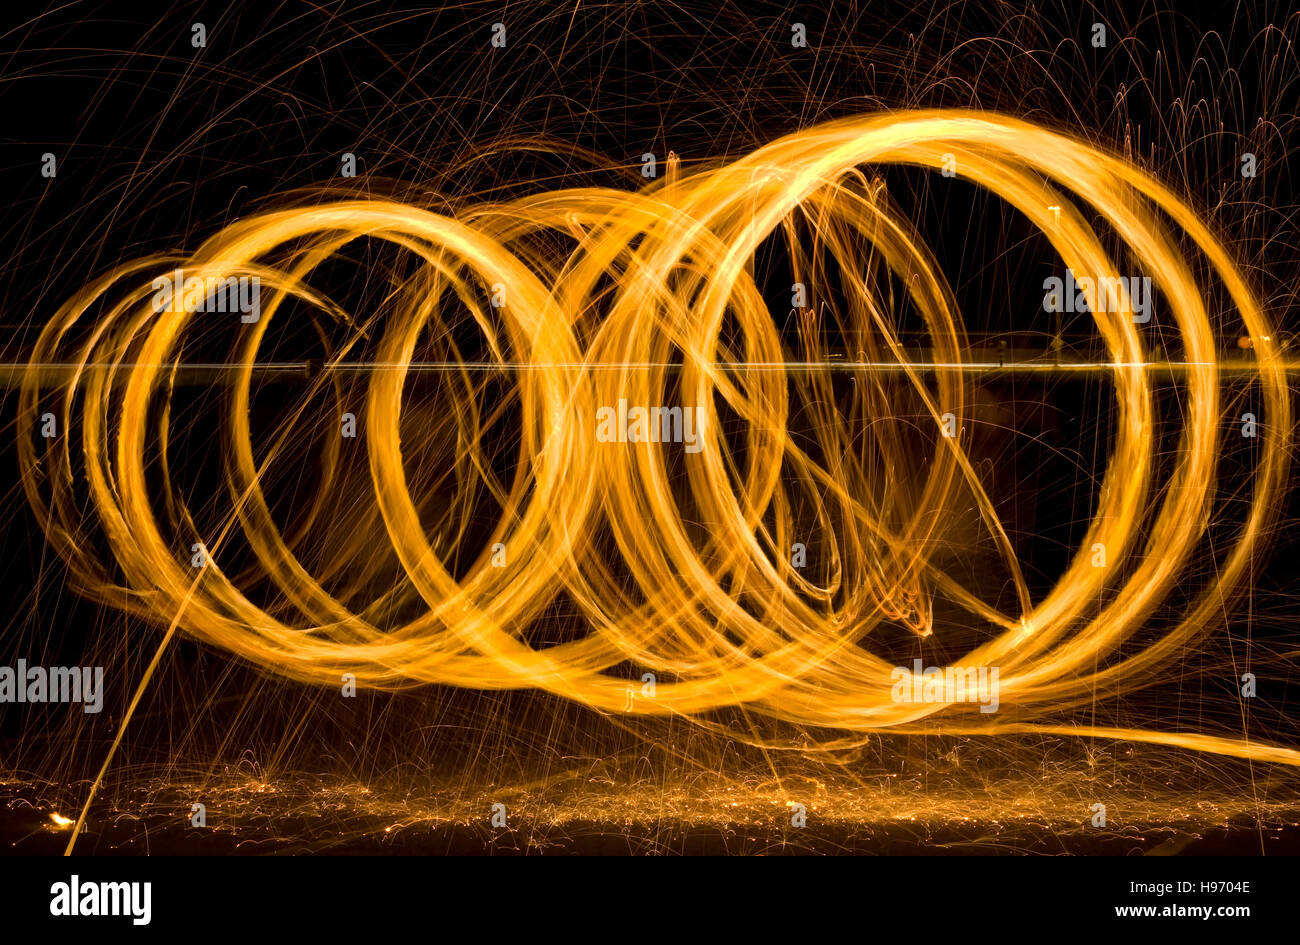 Round Light Painting Sparks at Night - Stock Image